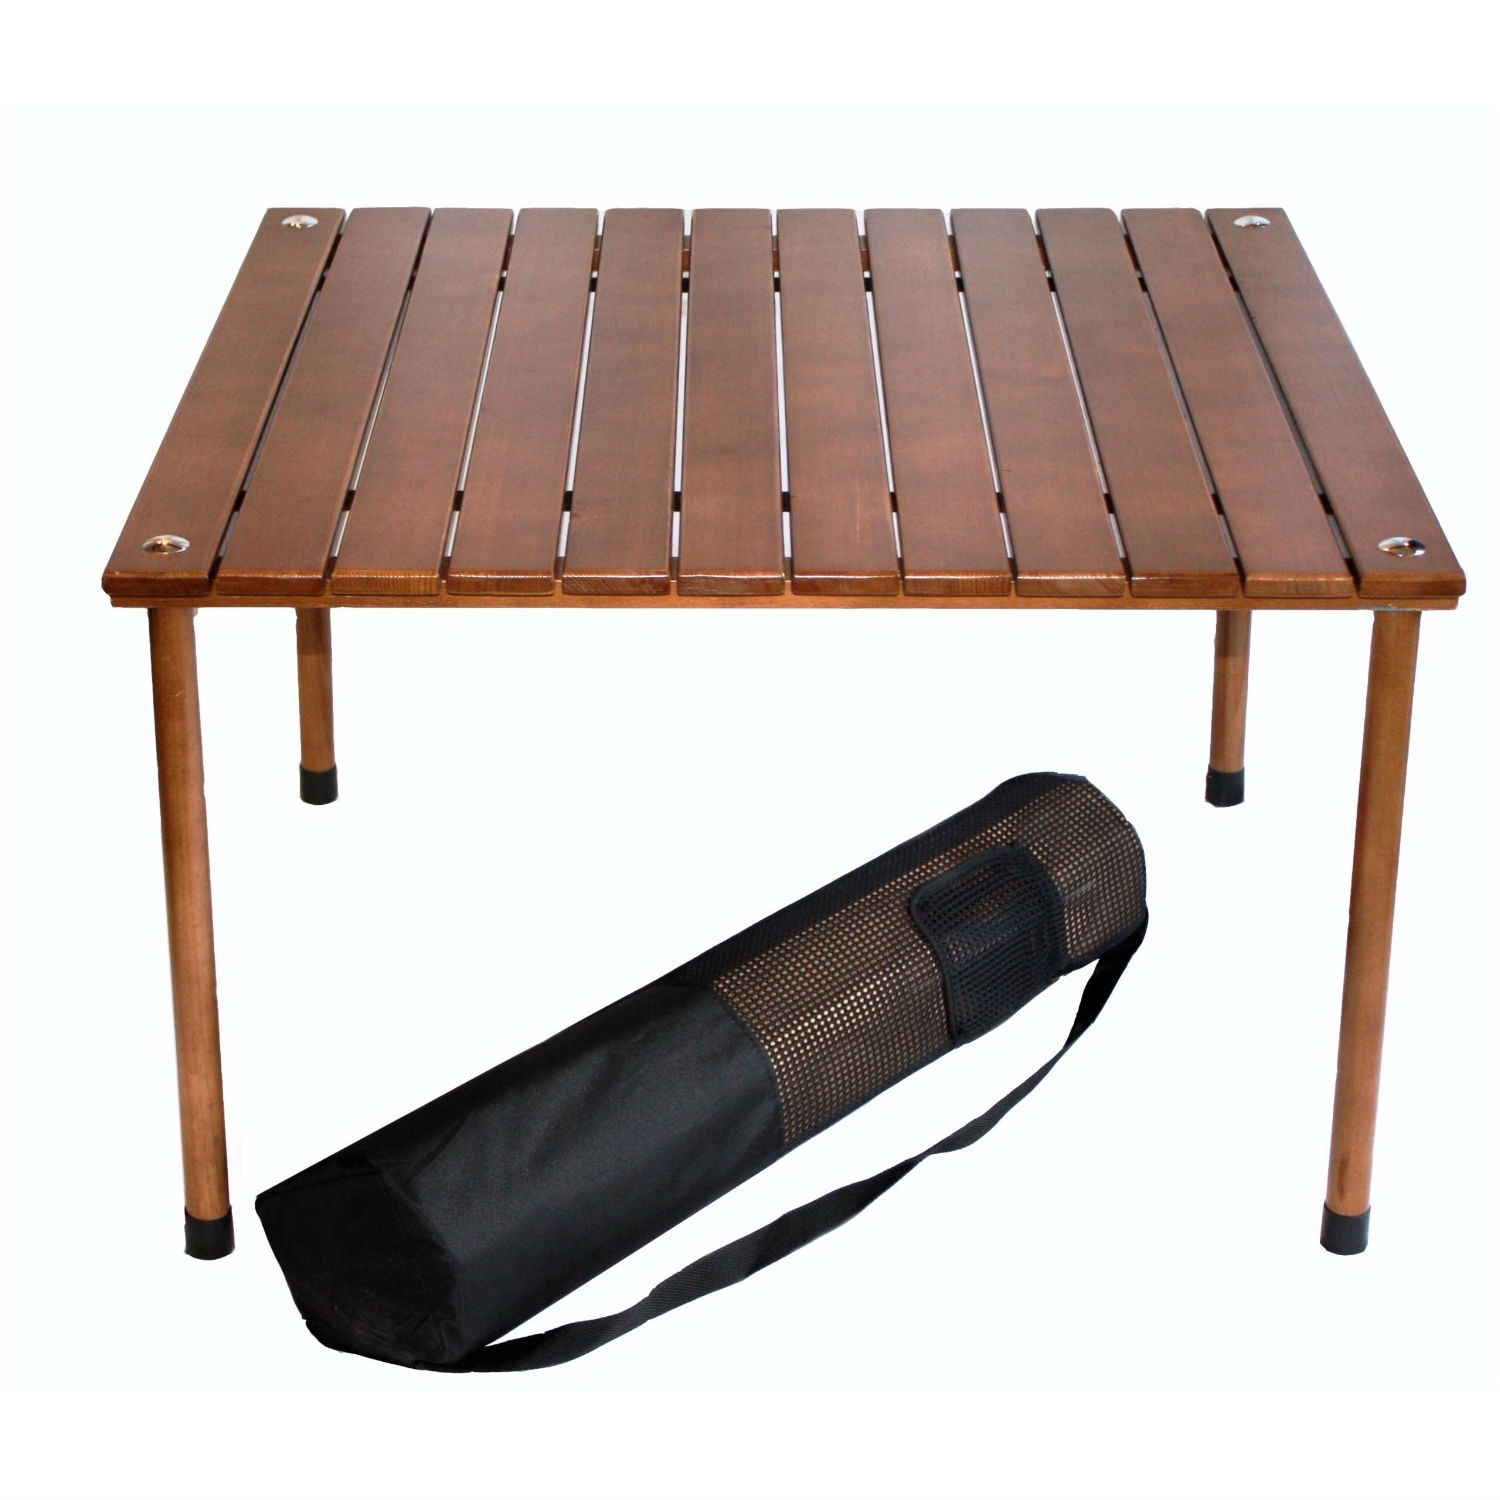 Outdoor Portable Folding Table With Carry Bag Solid Wood Top